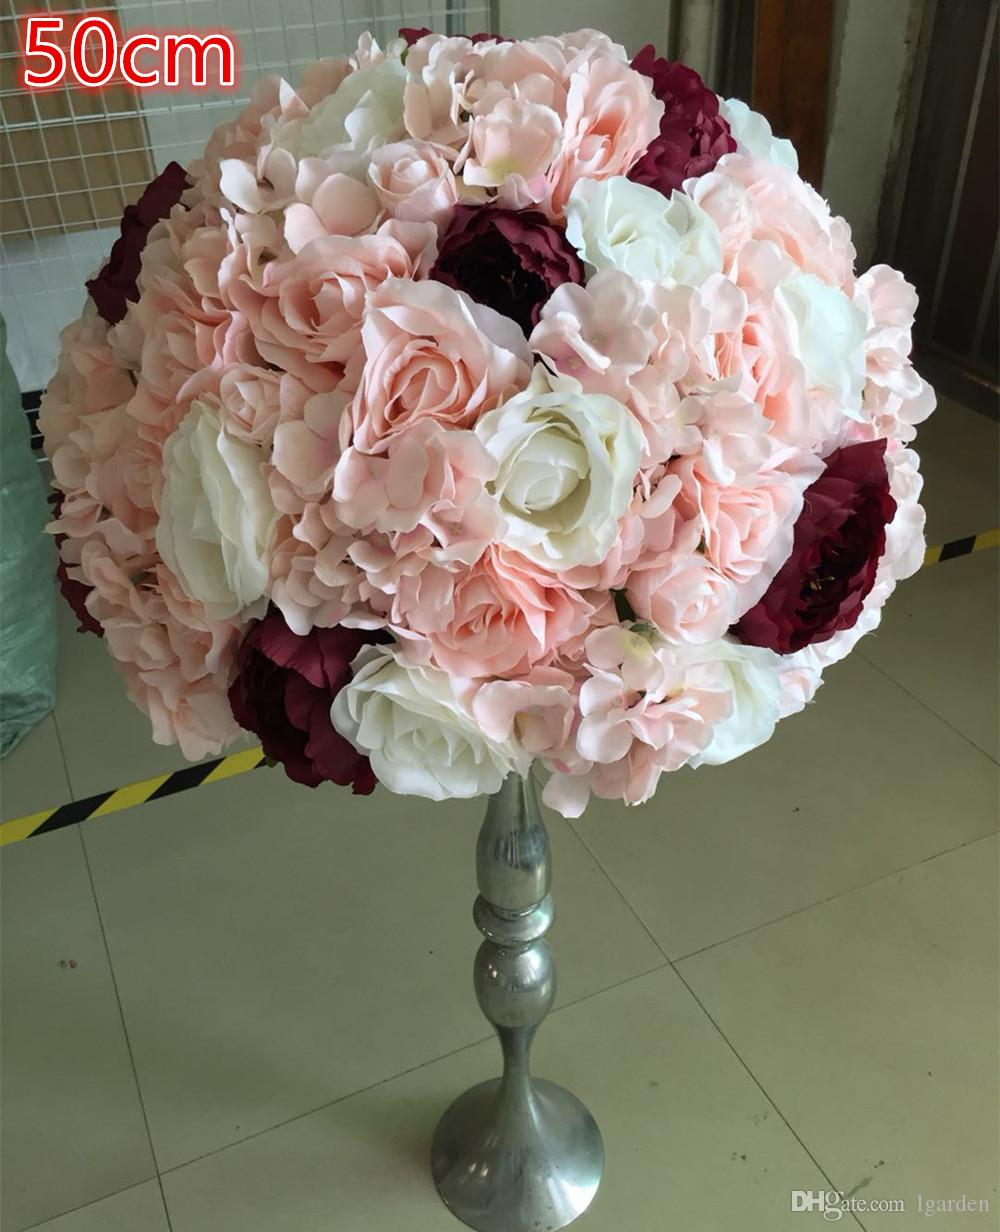 Artificial Ivory Rose Road Ball Shot Wedding Decoration Table Core Decoration Flower Ball 50cm